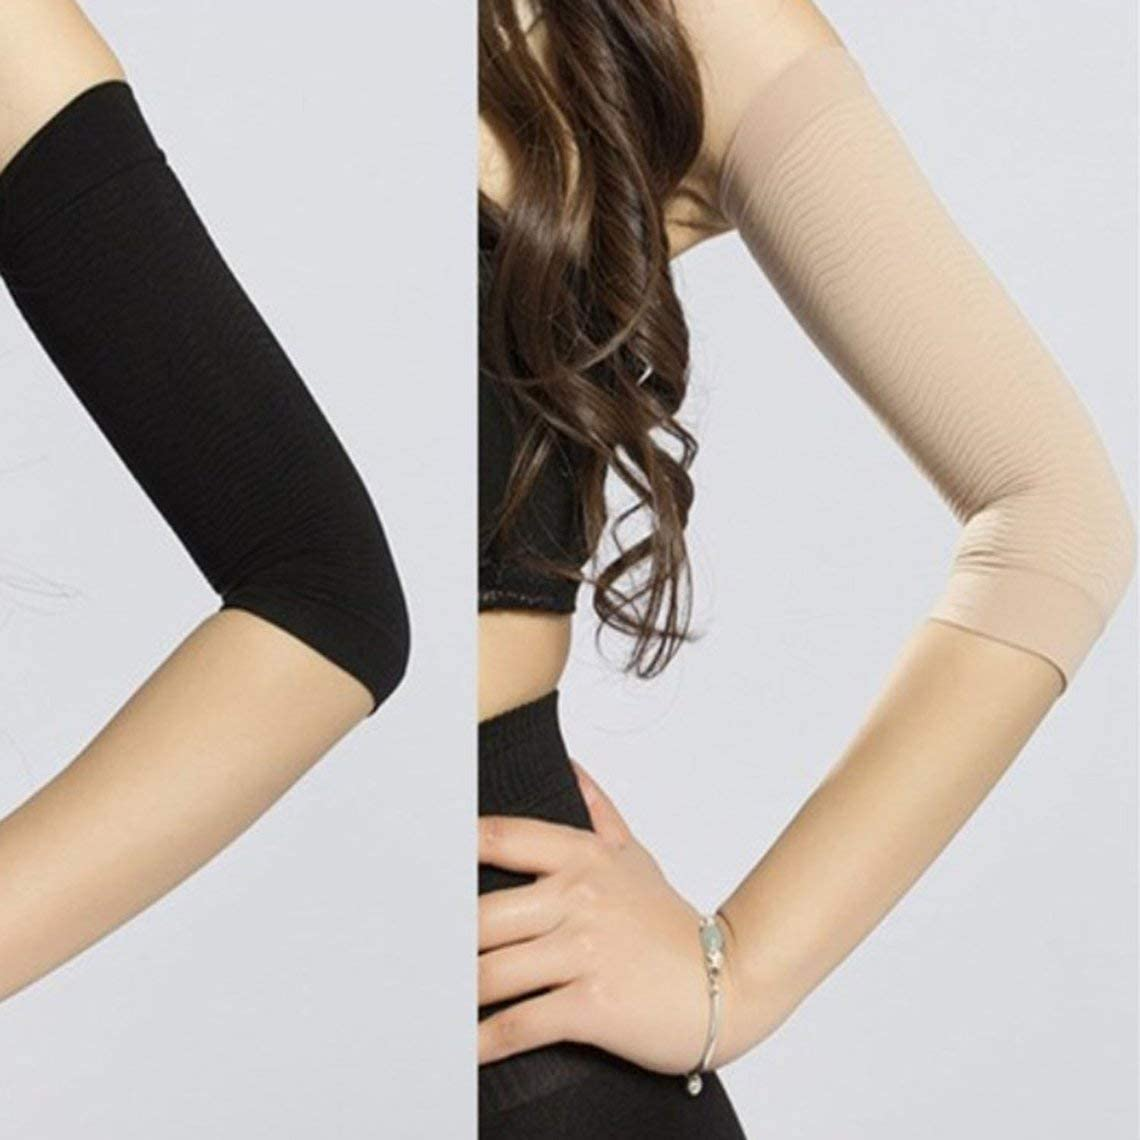 zinniaya 1 Pair 420D Compression Slimming Arms Sleeves Workout Toning Burn Cellulite Shaper Fat Burning Sleeves for Women